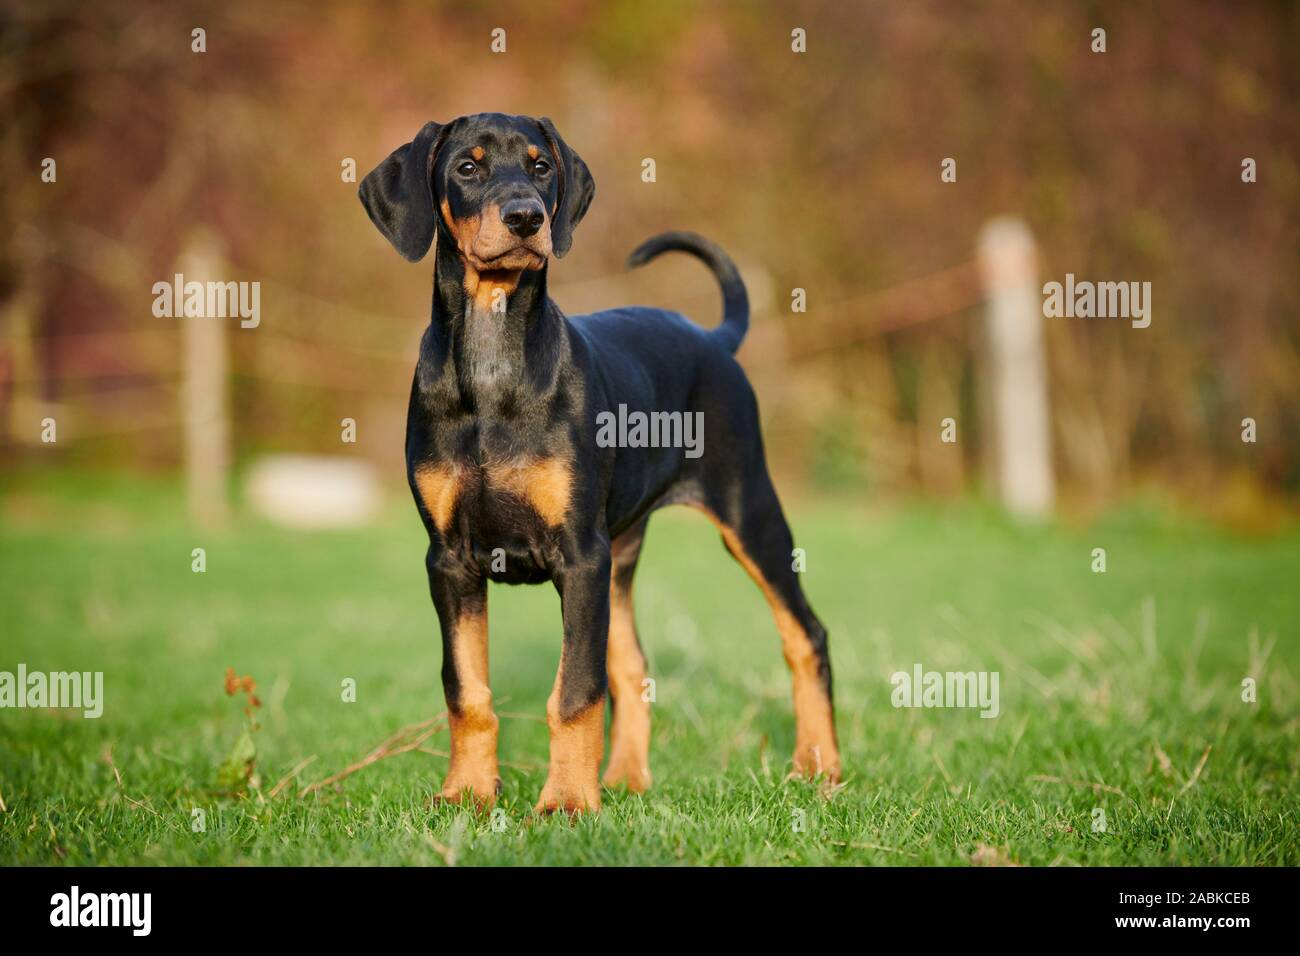 Doberman Pinscher Puppy With Natural Ears And Tail Standing On Grass Germany Stock Photo Alamy